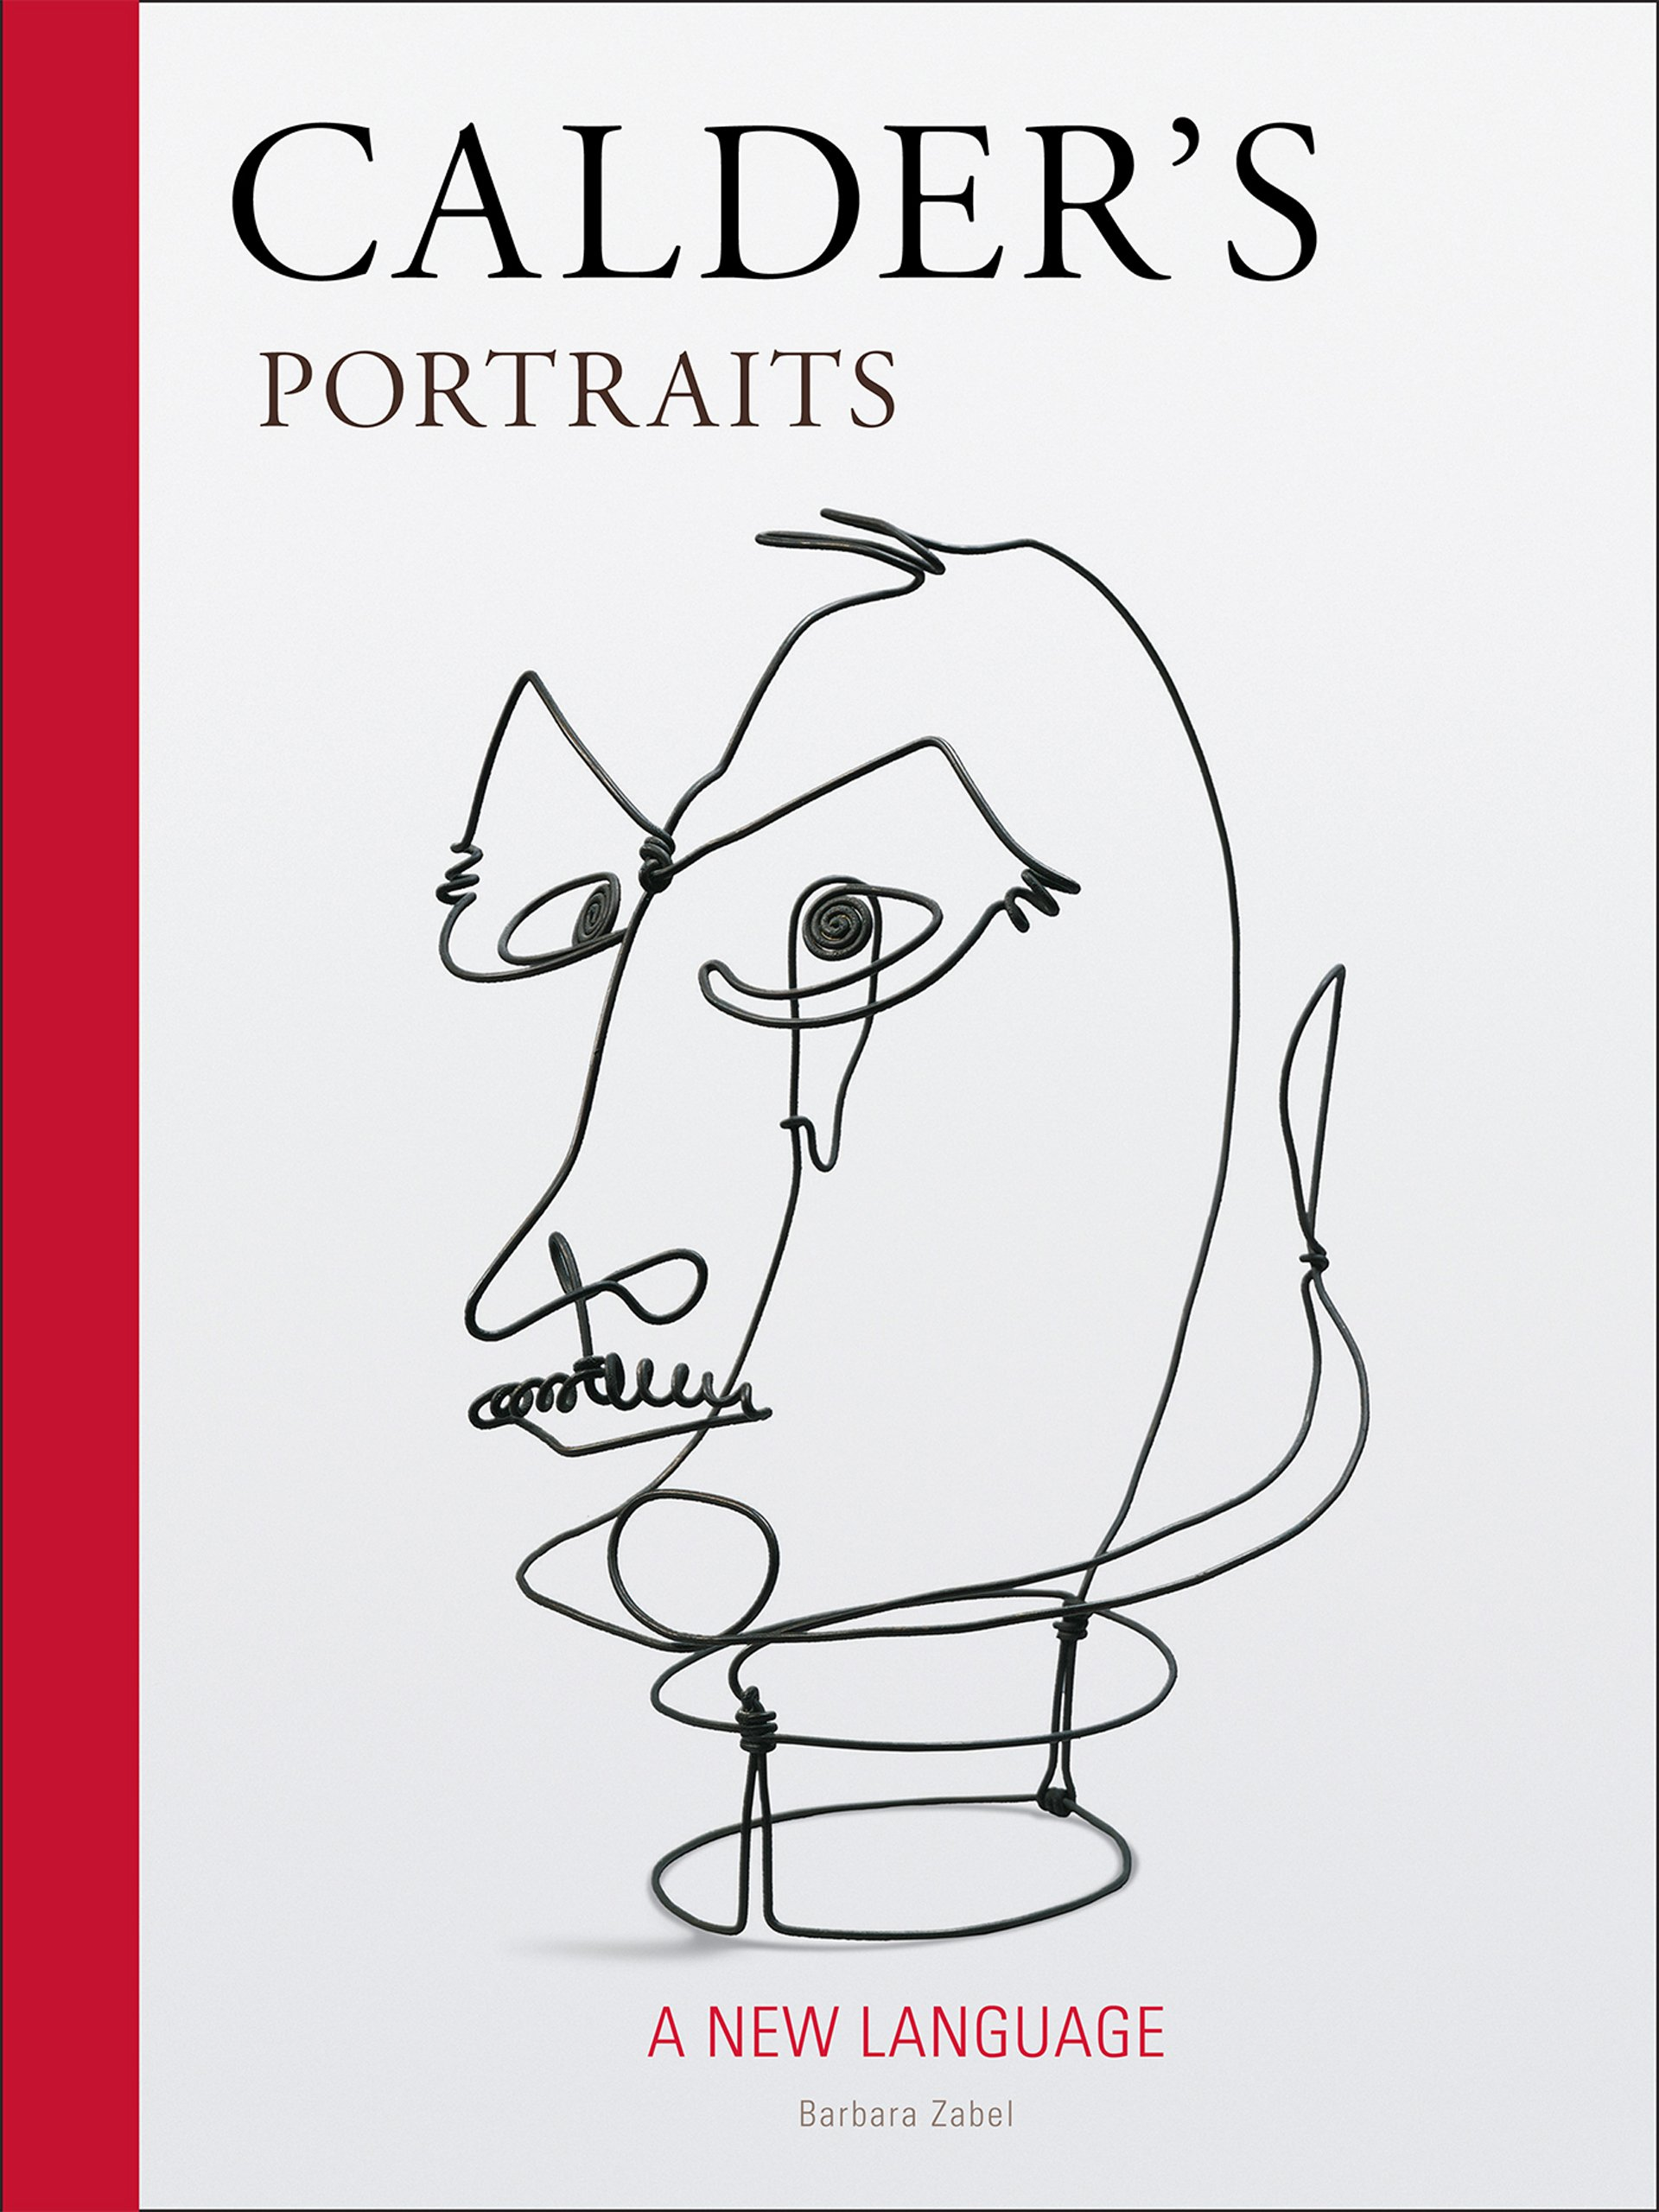 Calder's Portraits: 'A New Language' by Brand: Smithsonian Institution Scholarly Press